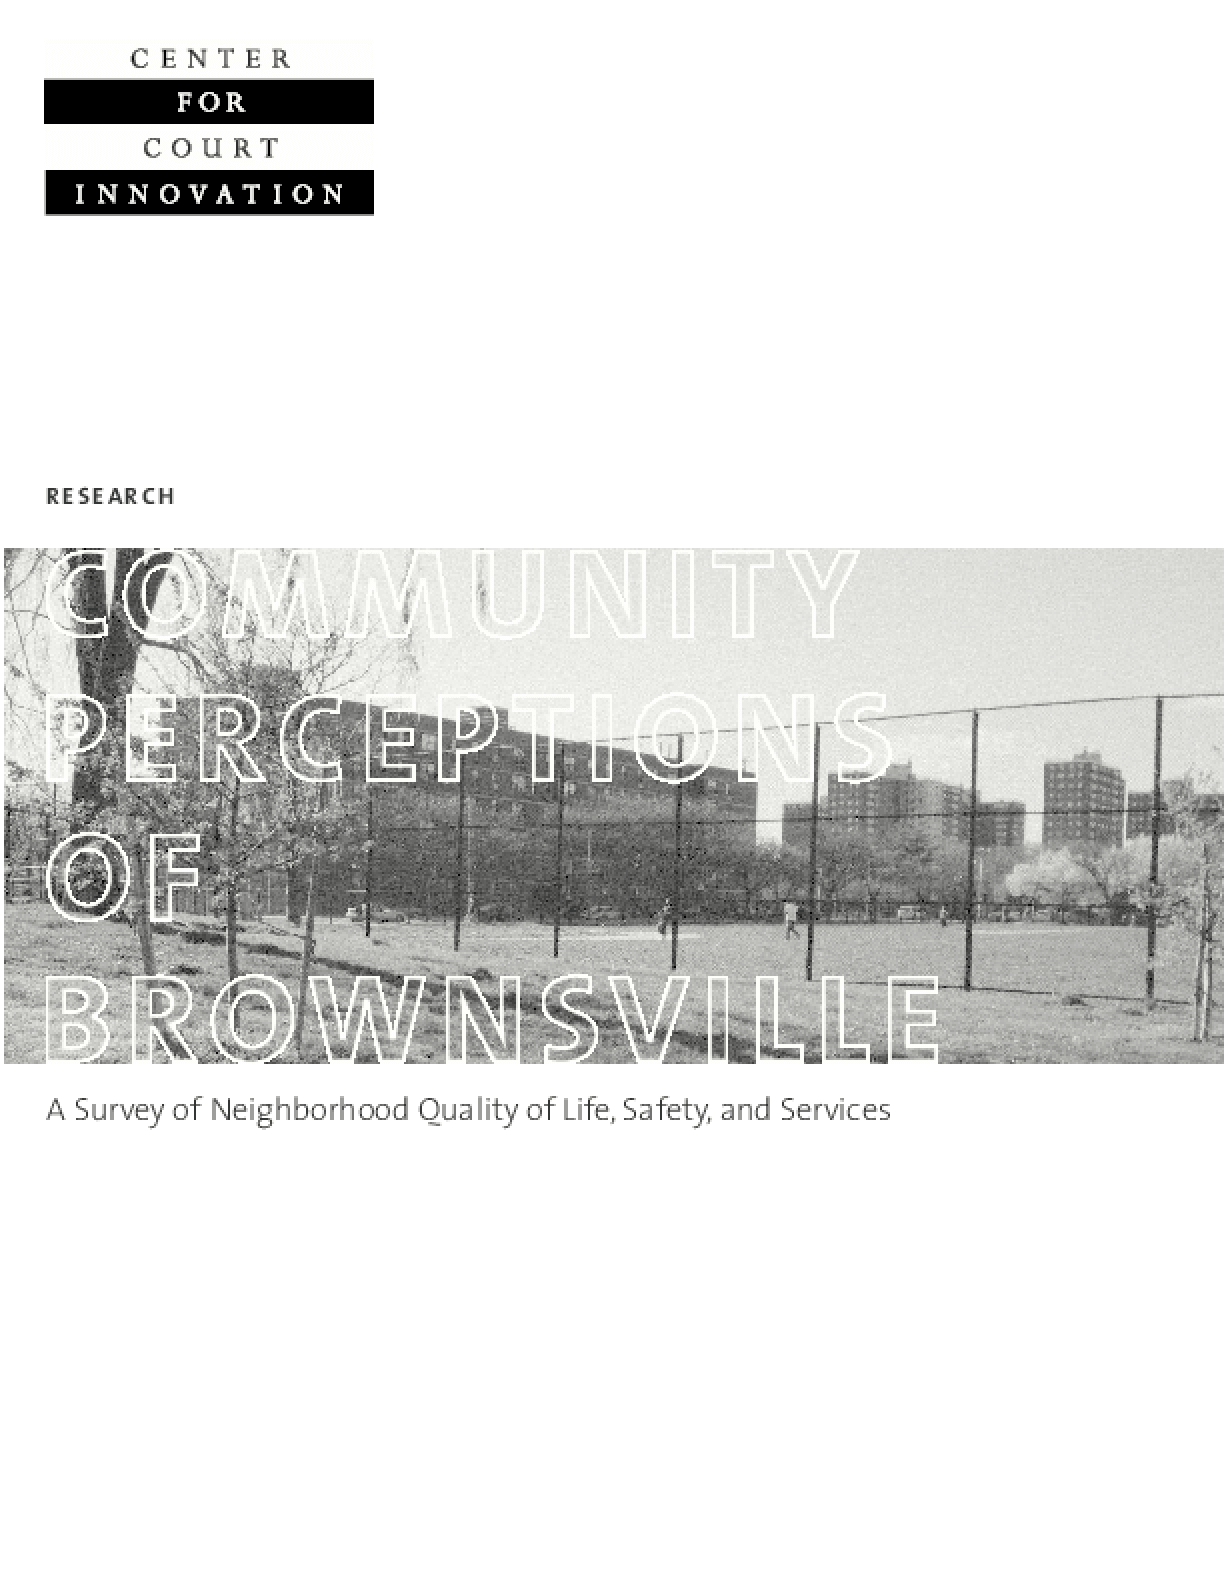 Community Perceptions of Brownsville: A Survey of Neighborhood Quality of Life, Safety, and Services